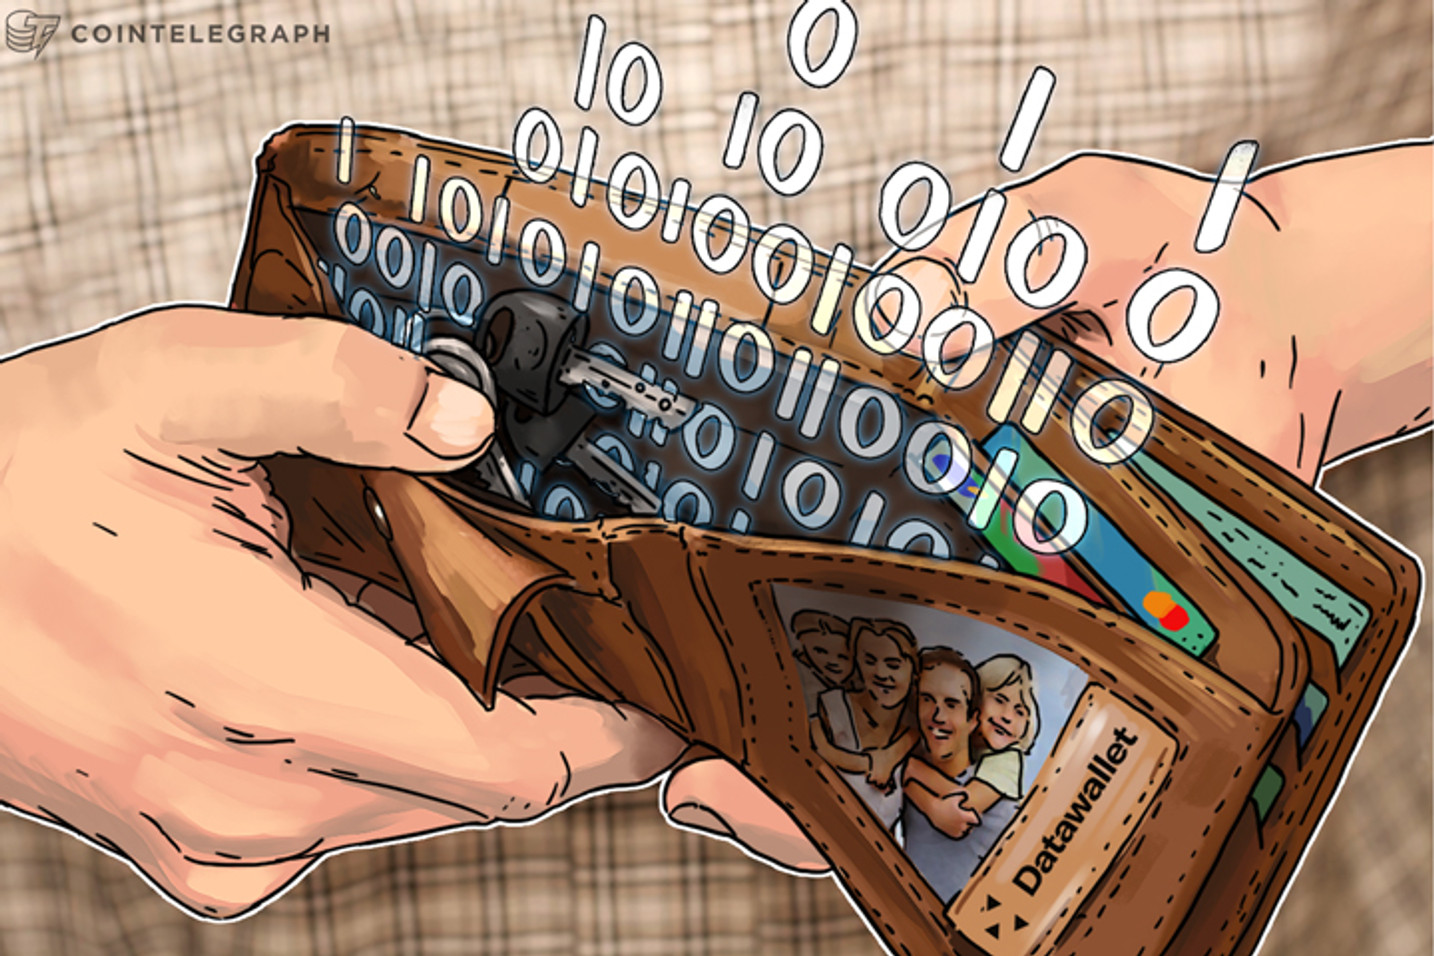 Blockchain Start-Up To Help Public Own And Monetize Their Data